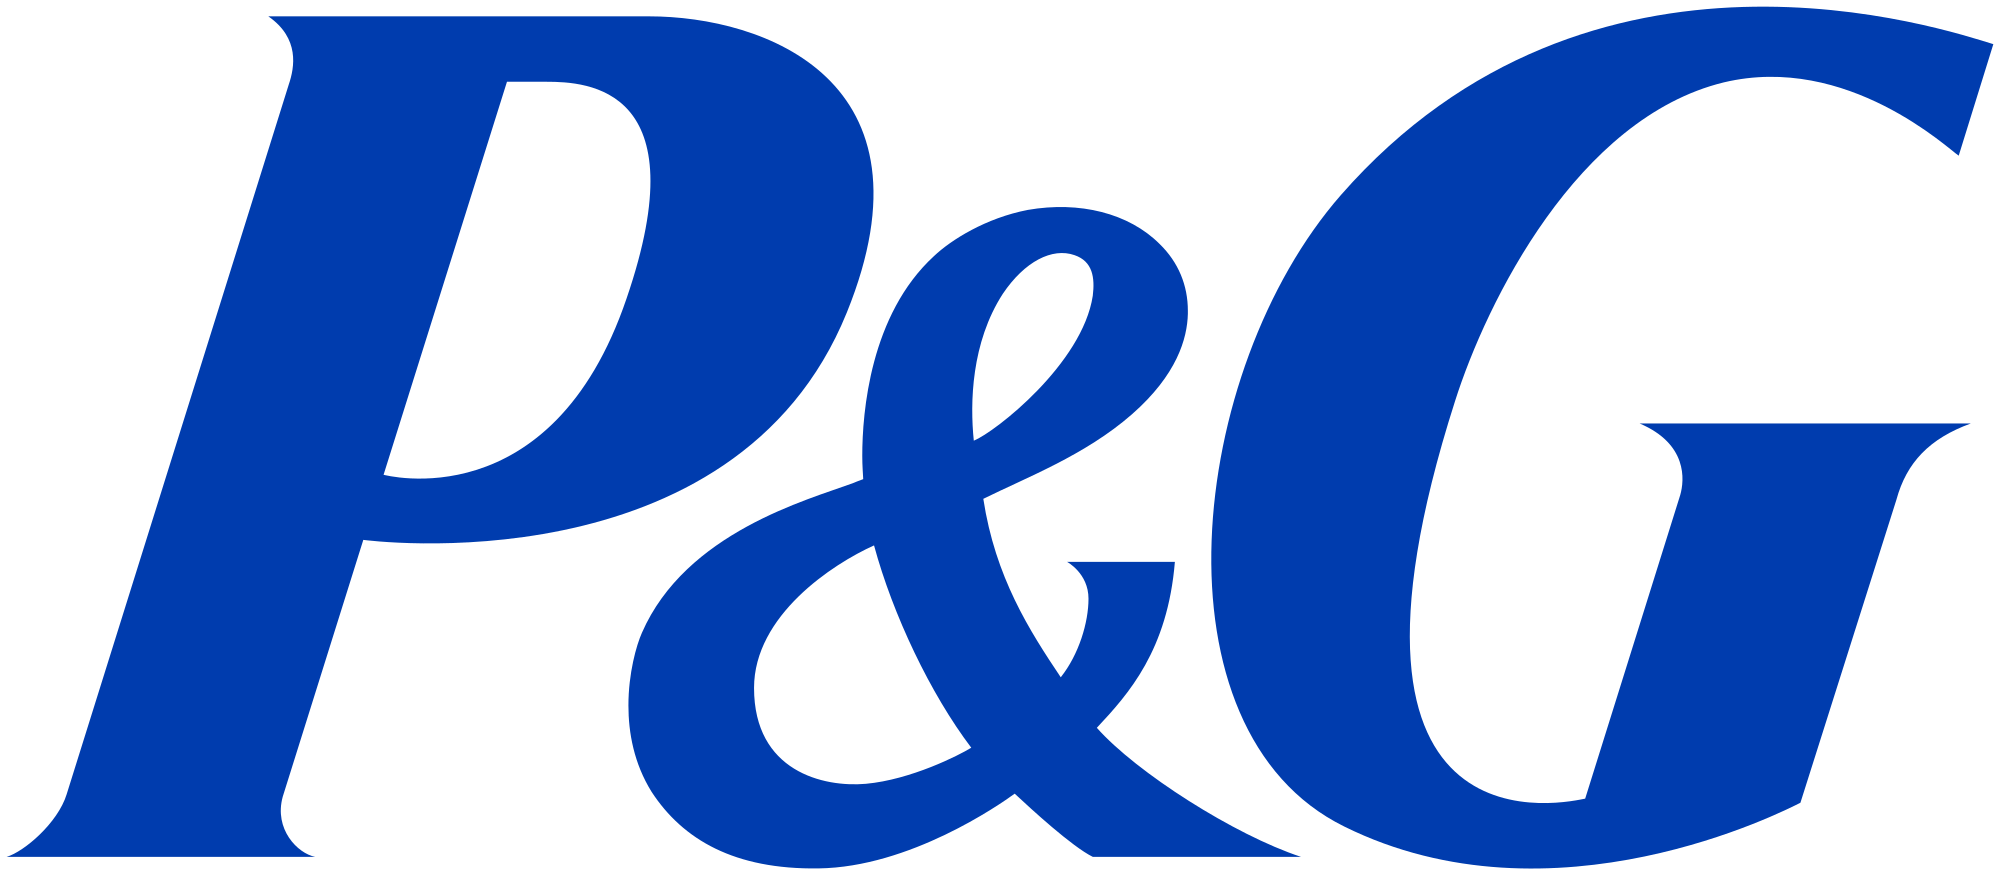 76h-p&g.png